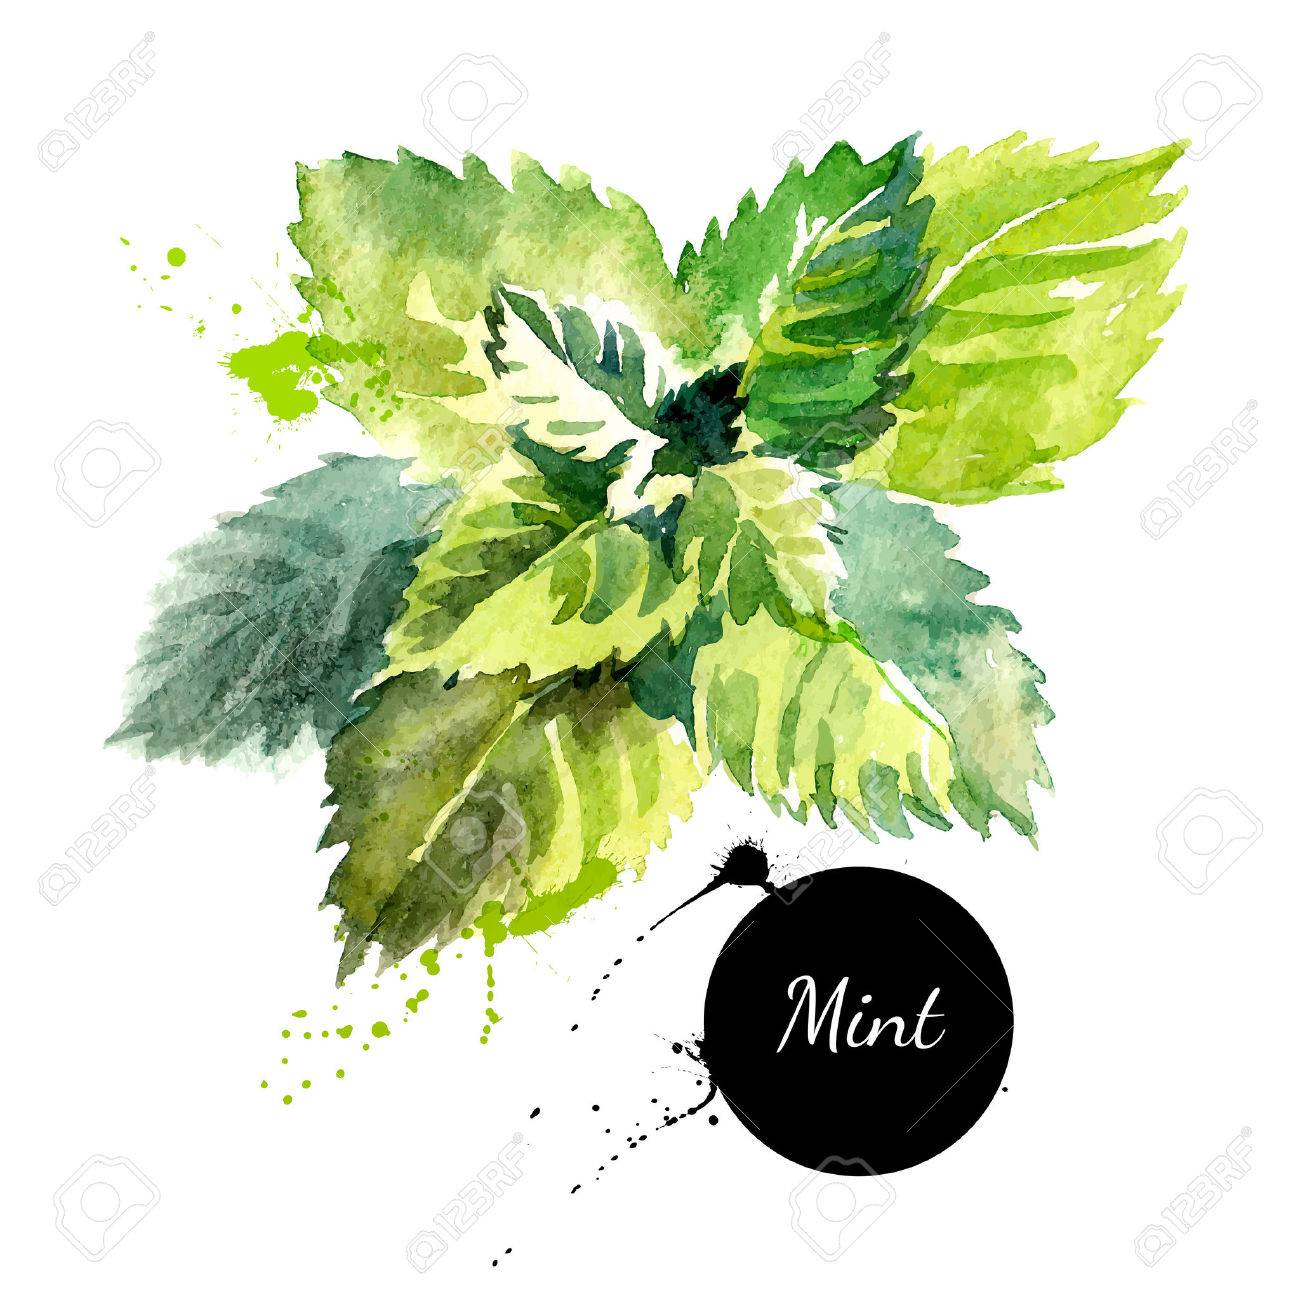 Kitchen herbs and spices banner. Vector illustration. Watercolor mint - 38737056